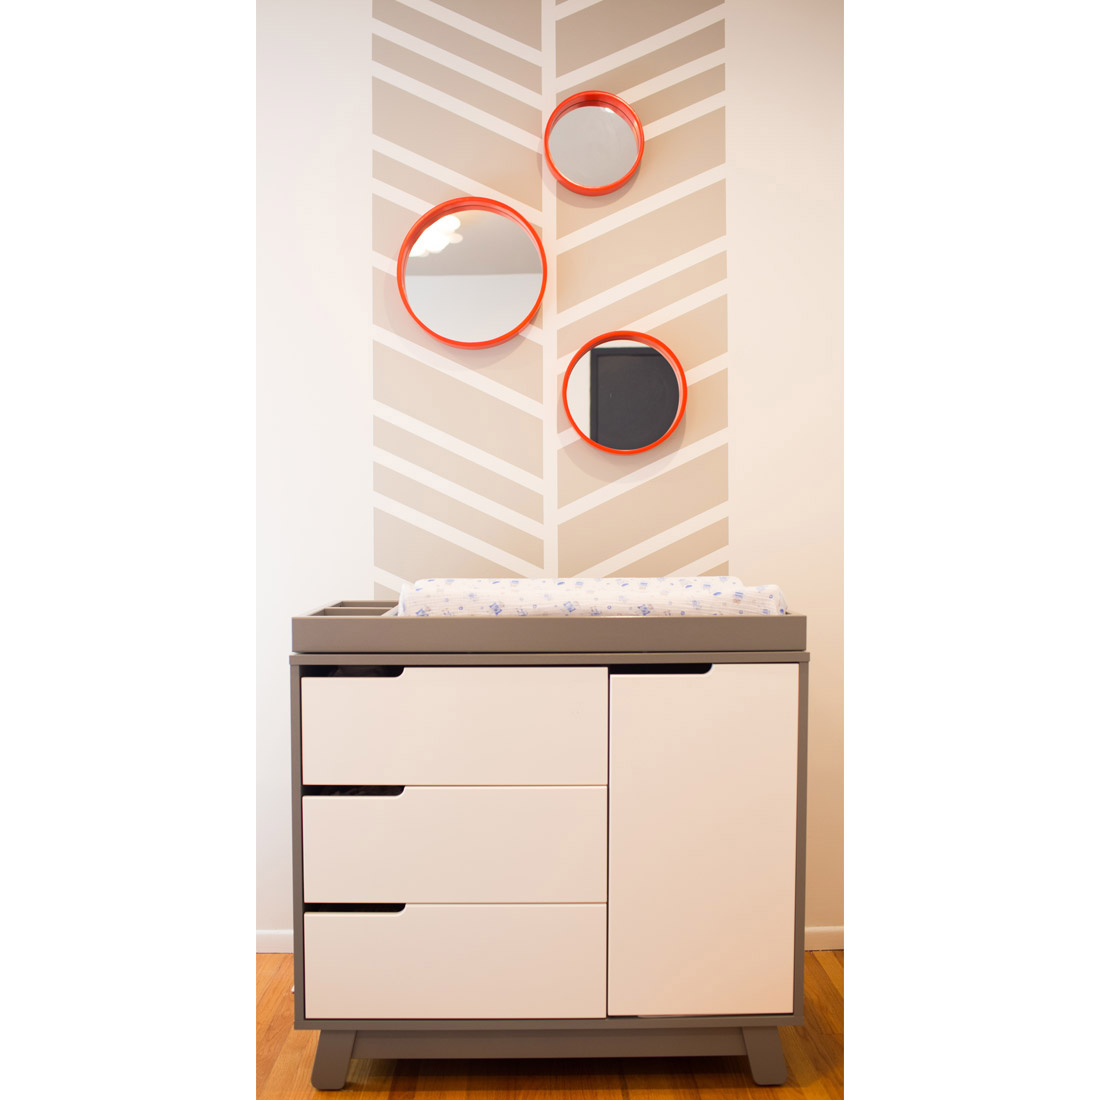 nursery changing table grey and white with painted chevron detail on wall and orange round mirrors for decor design by sara bates interior design